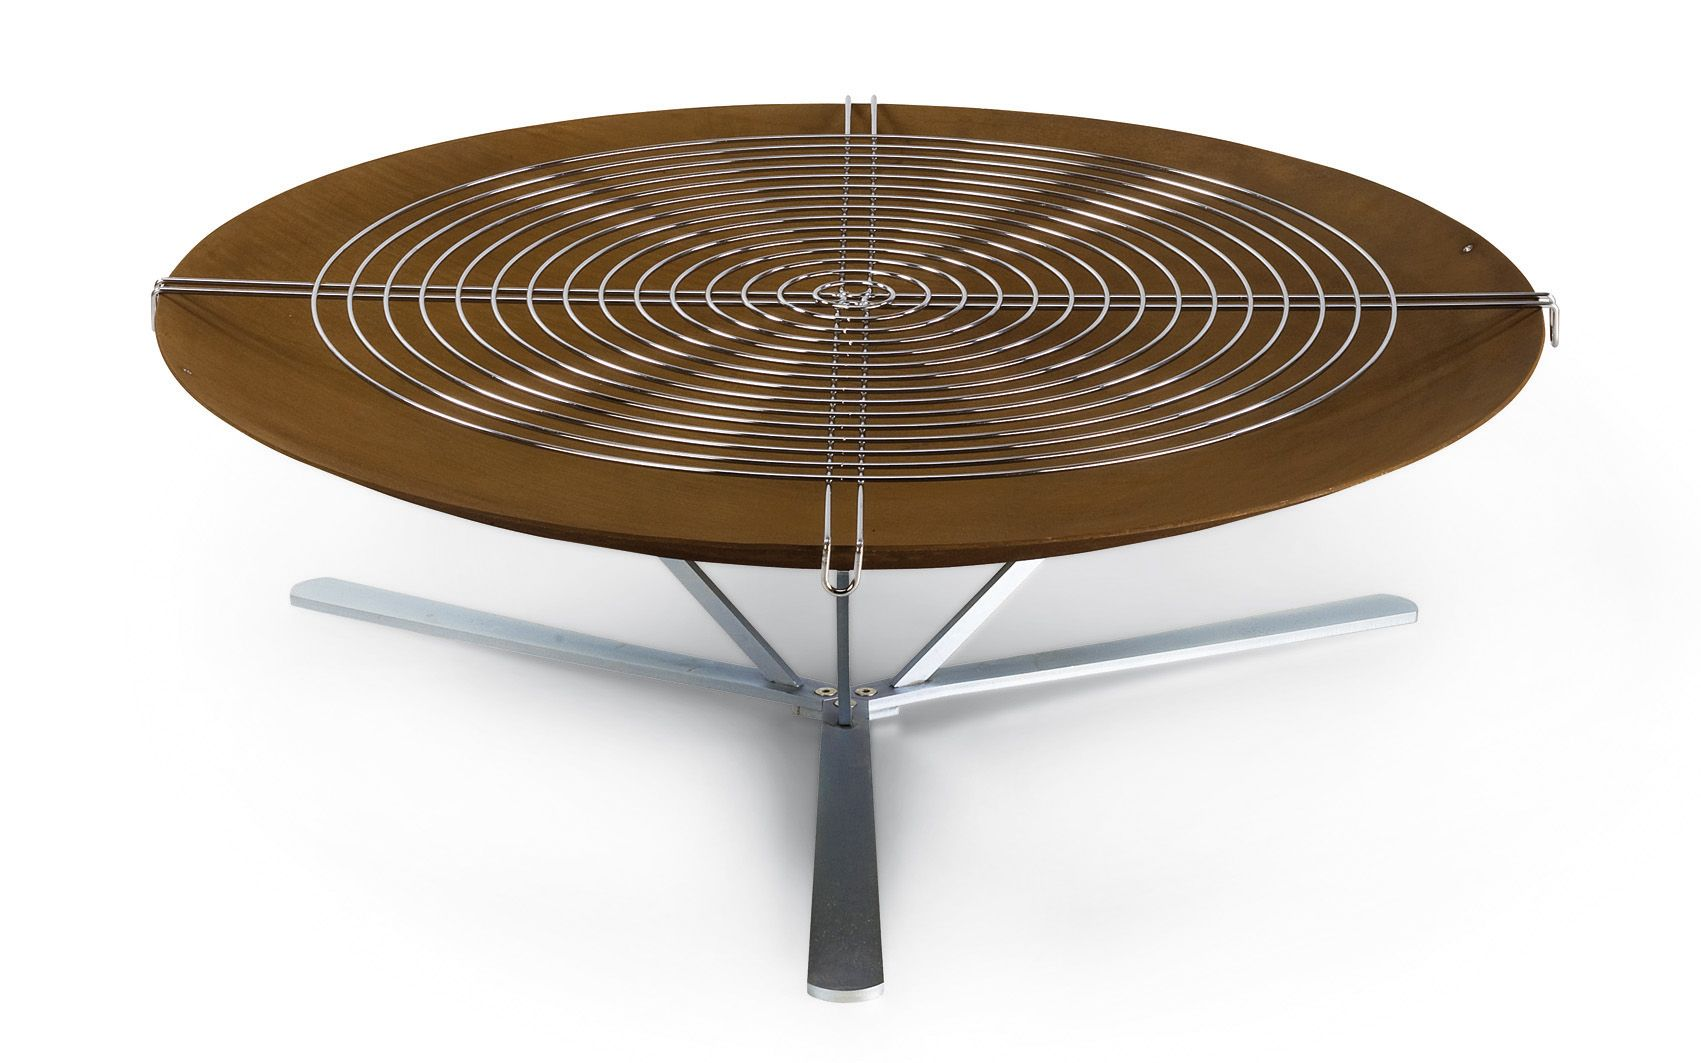 discolo firepit, designed by ivano losa for ak47 - italy. discolo, Gartenbeit